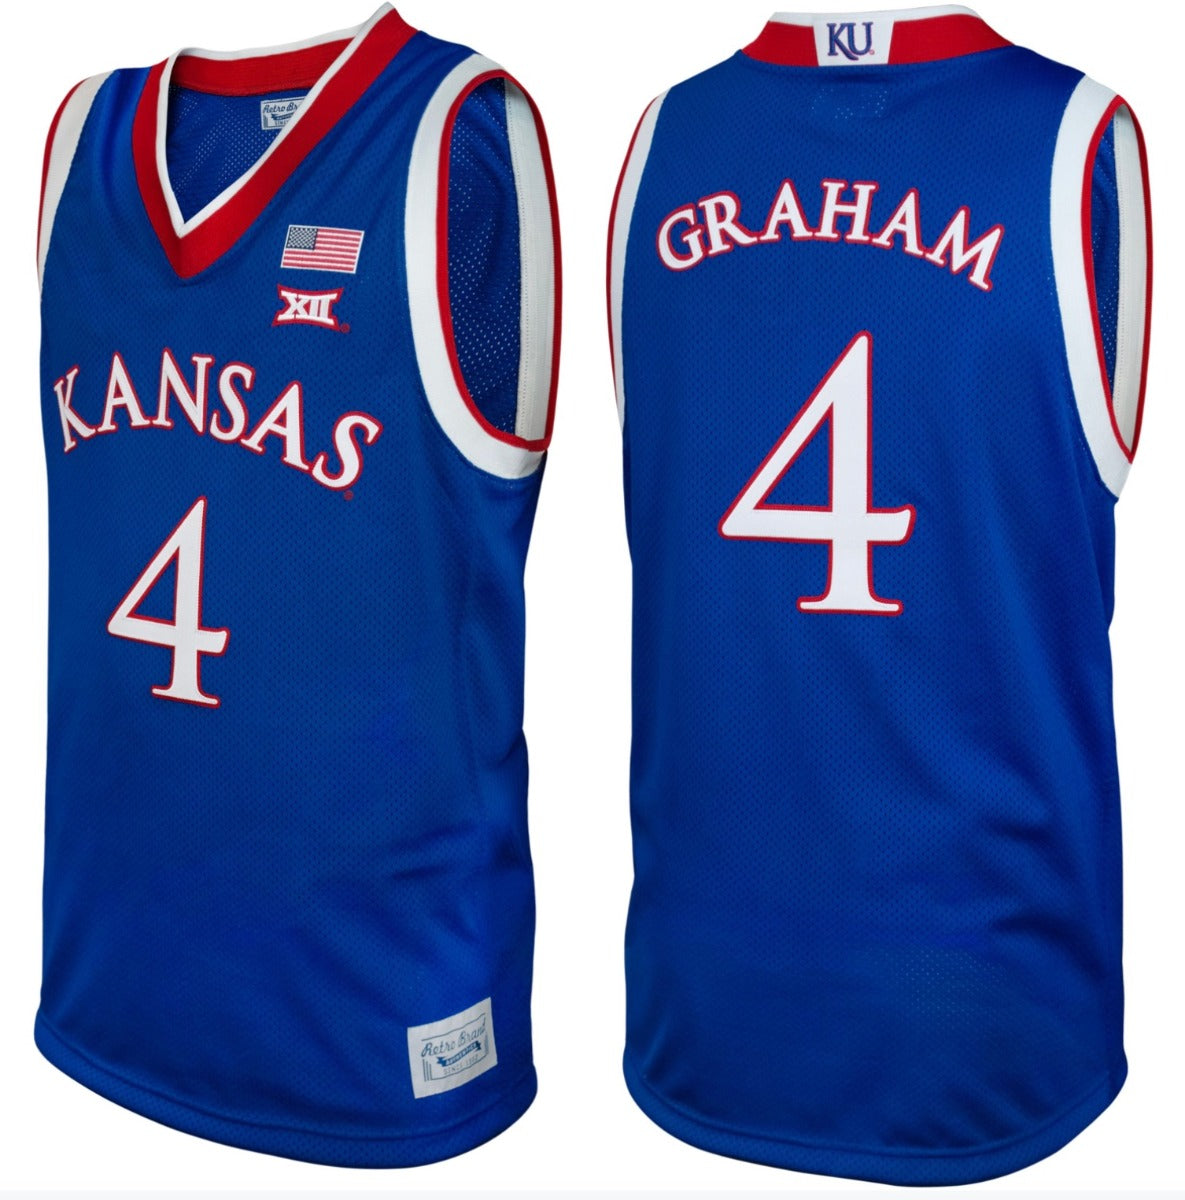 Kansas Jayhawks Devonte' Graham Throwback Jersey